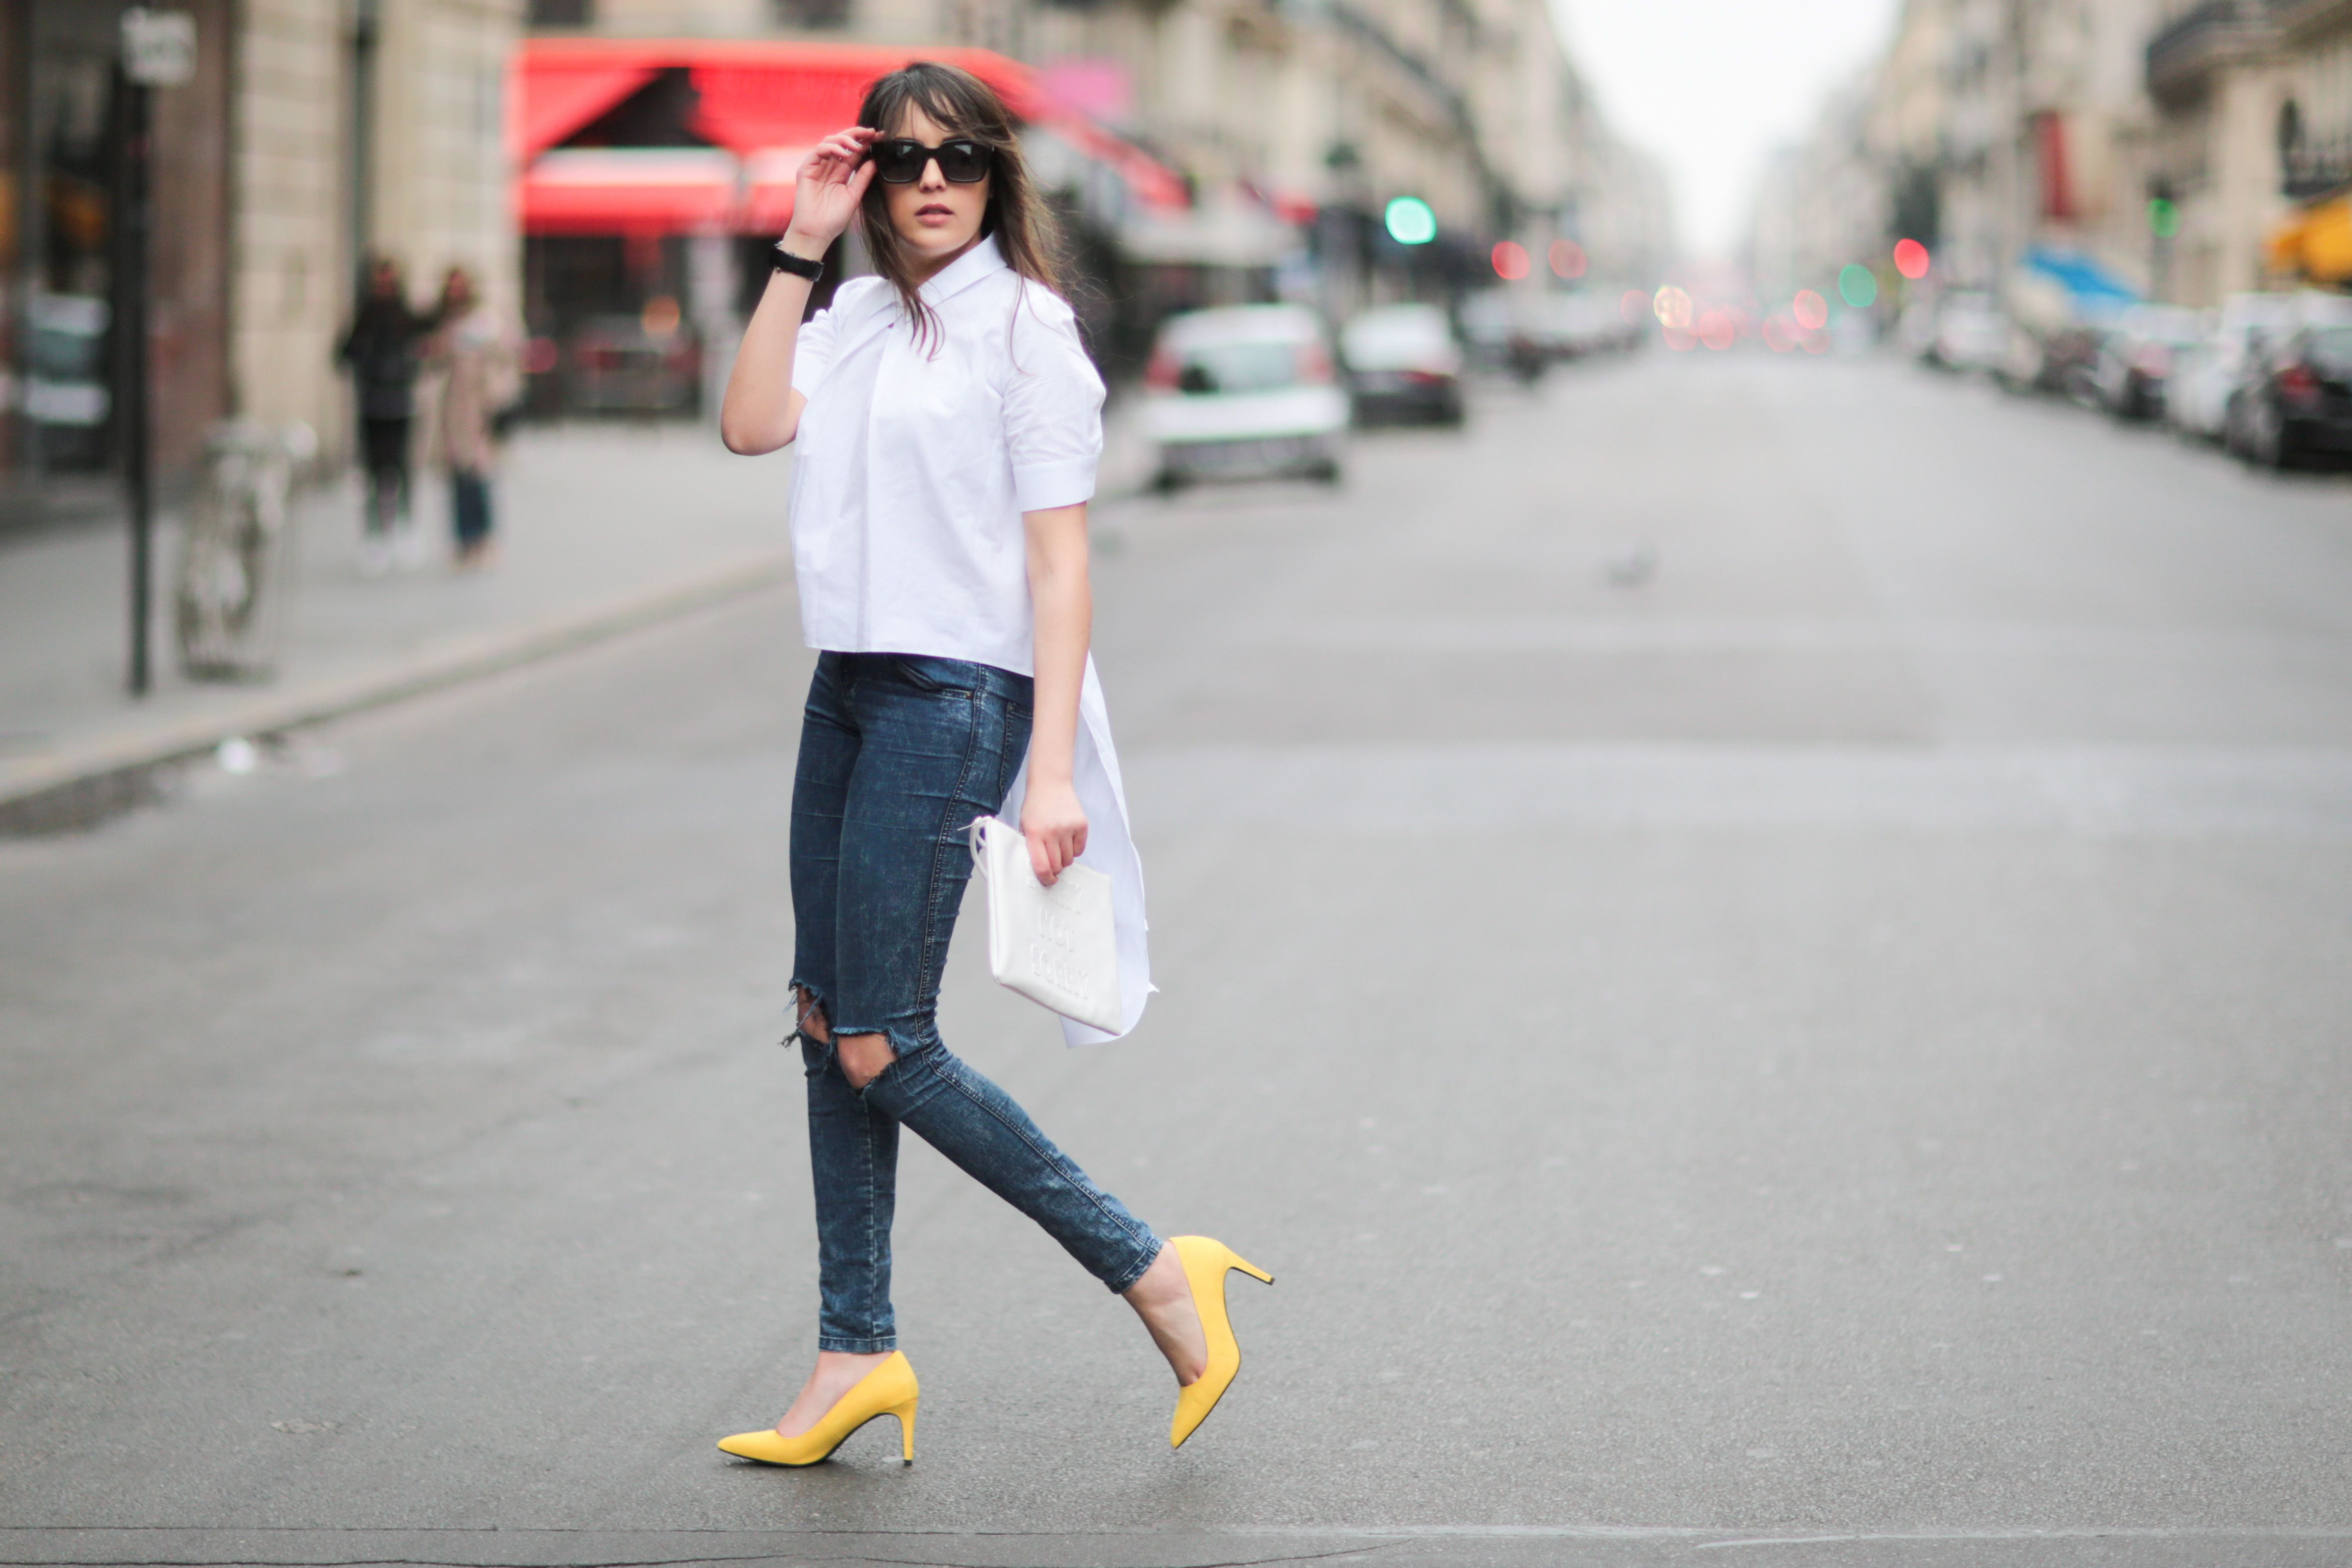 Street style photo of woman in jeans and high heels